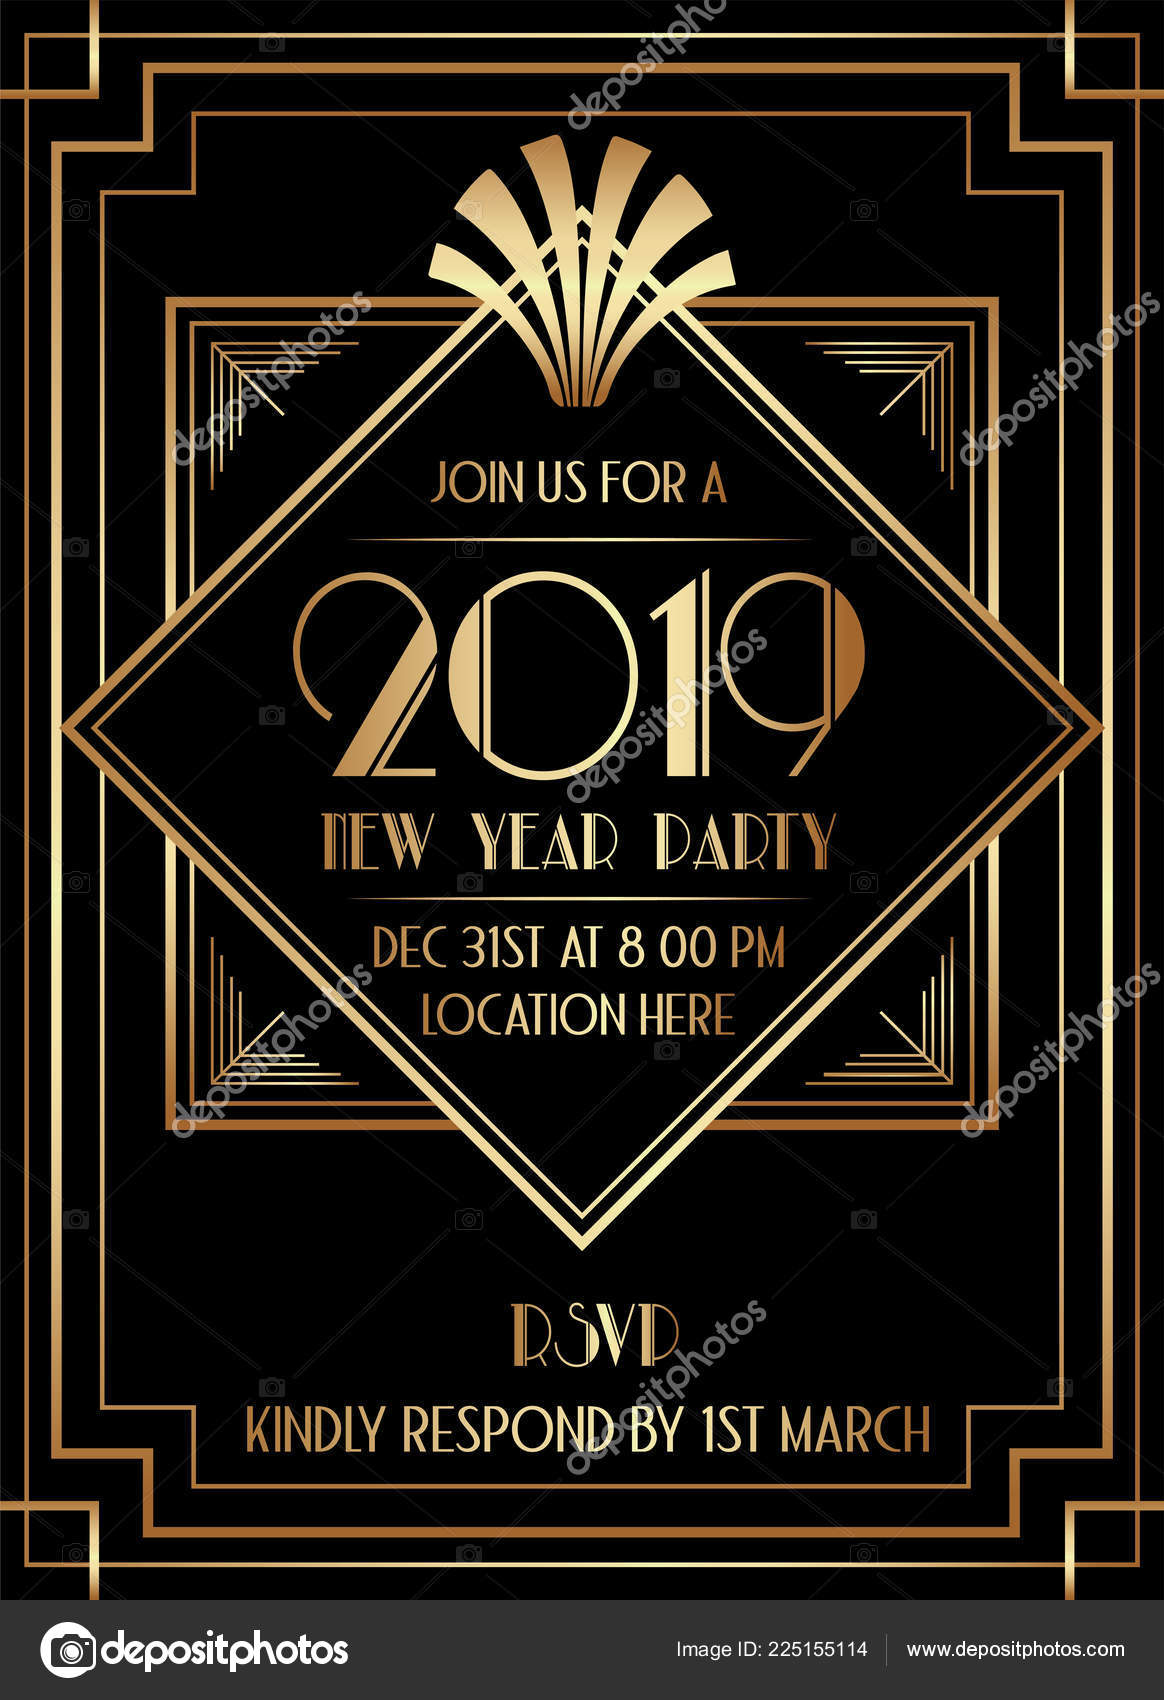 2019 new year party art deco style invitation design stock vector